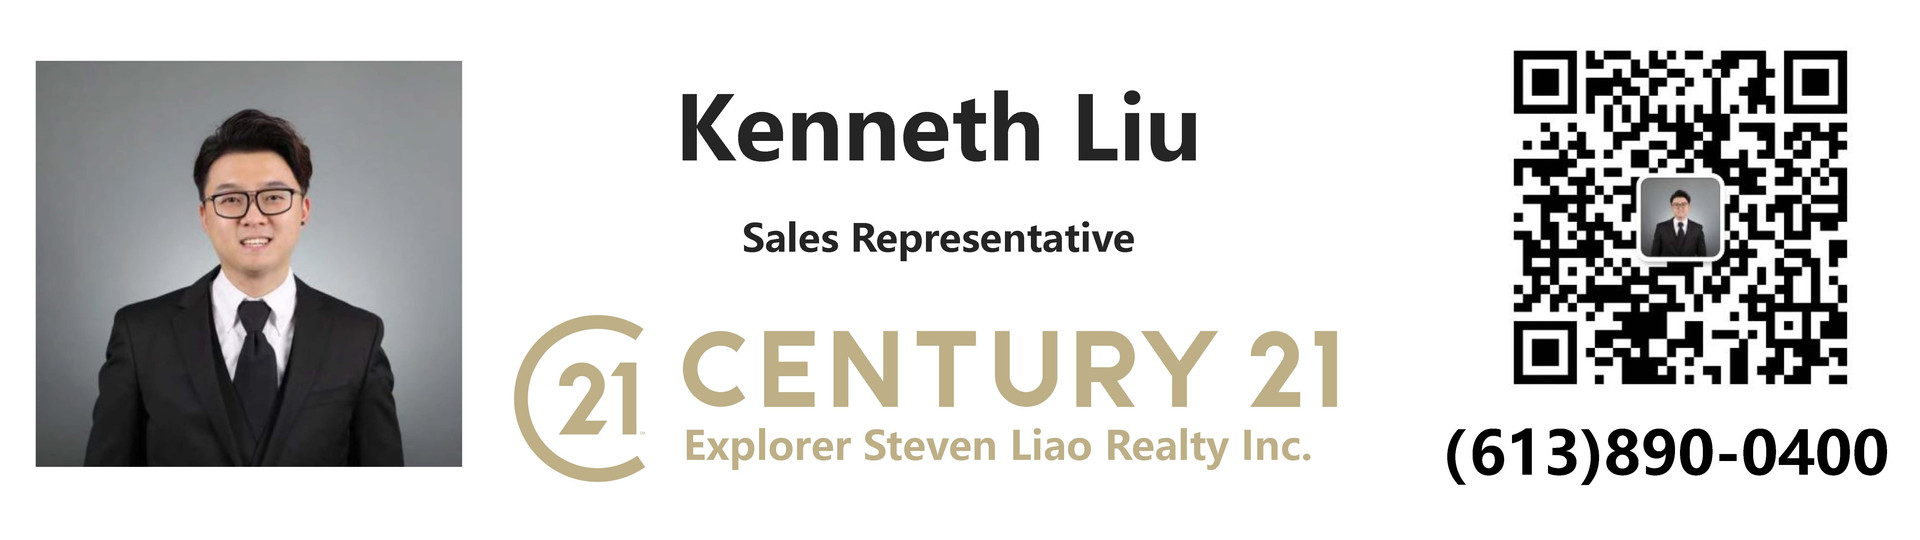 Kenneth Liu Banner.jpg